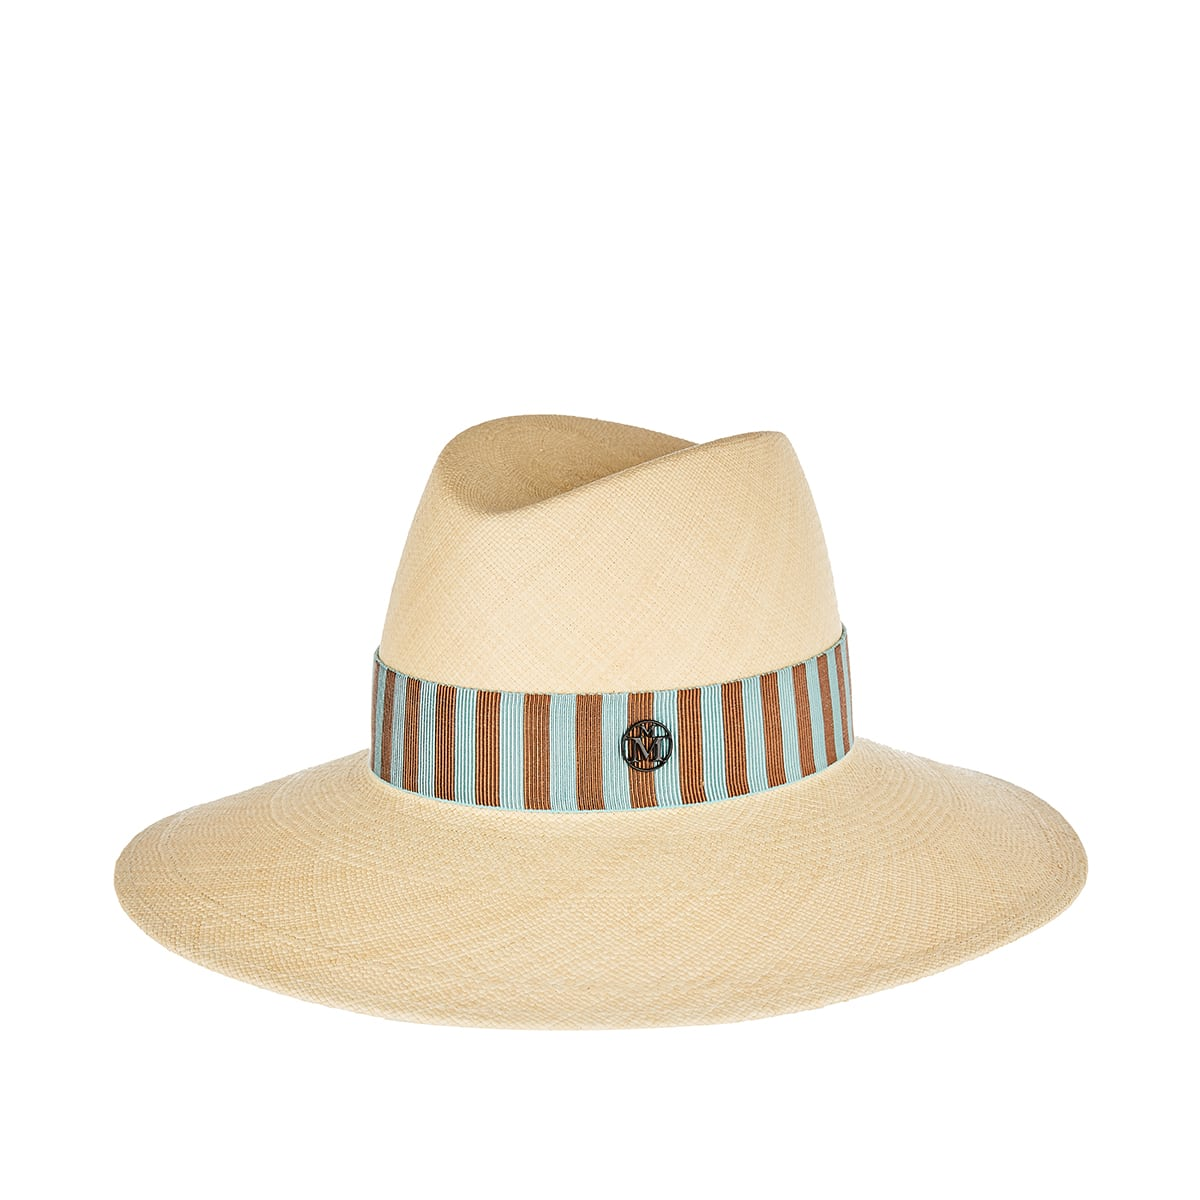 Kate straw hat